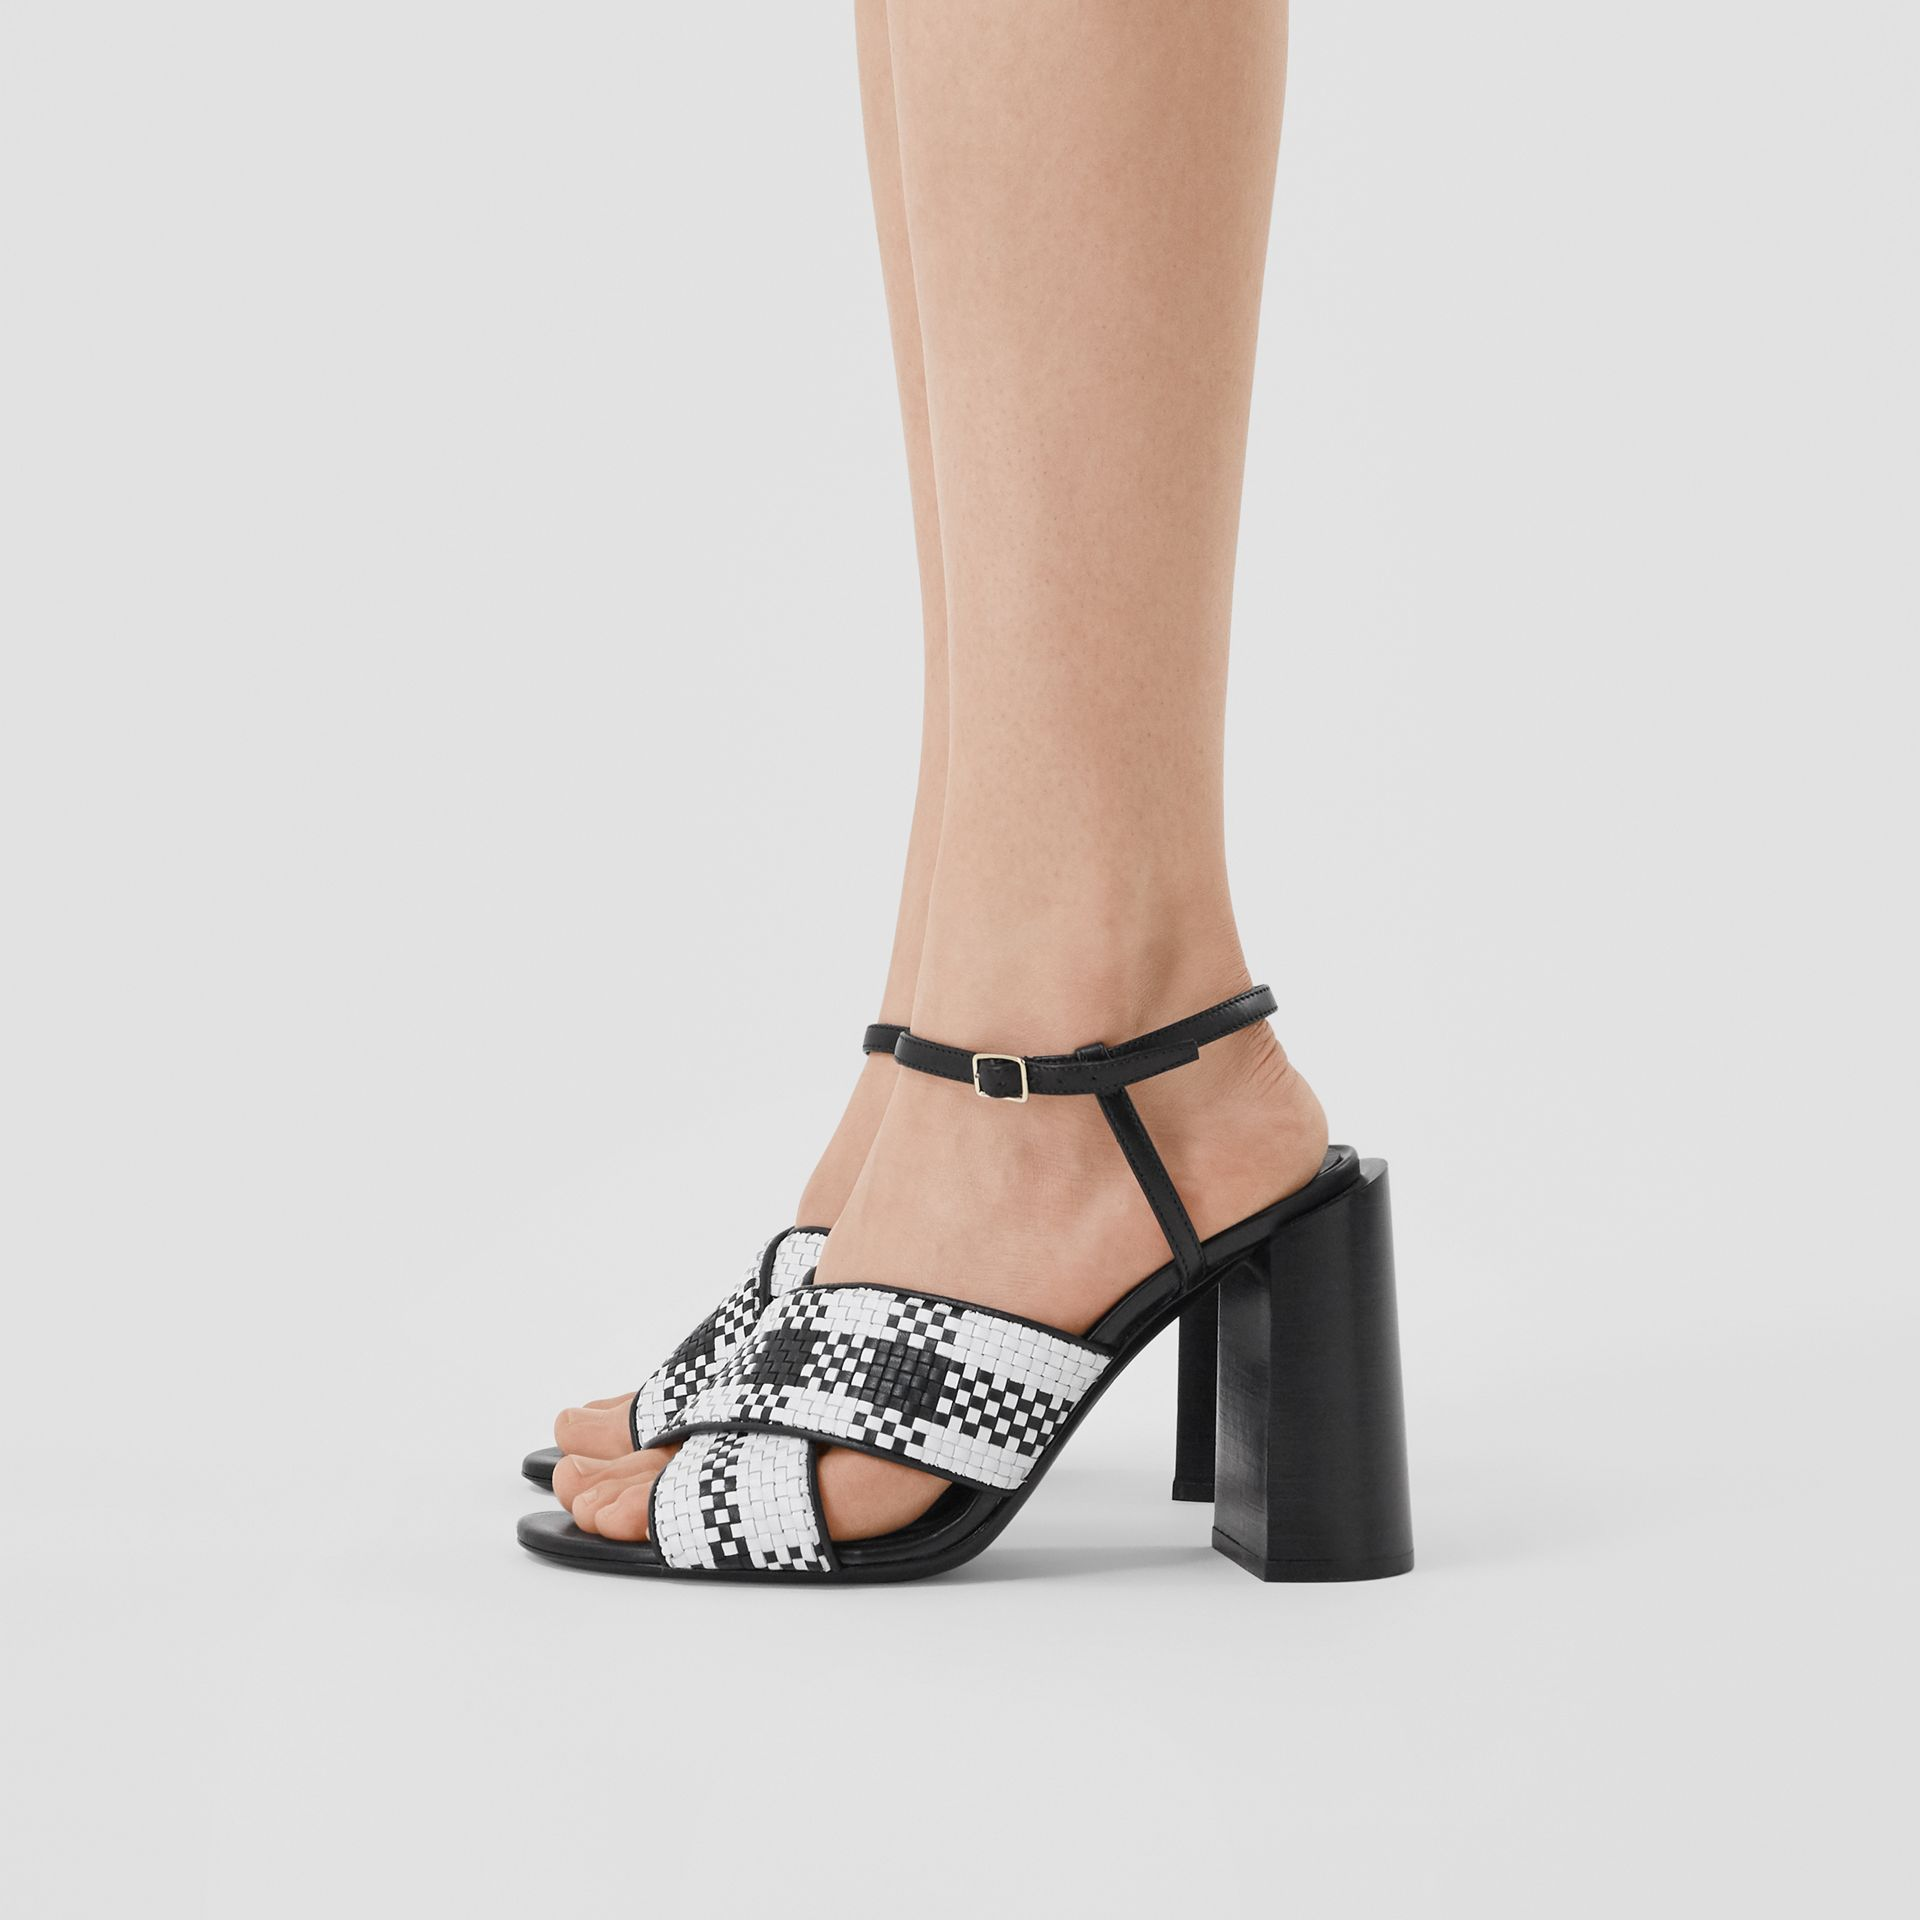 Latticed Leather Block-heel Sandals in Black/white - Women | Burberry Hong Kong S.A.R - gallery image 2